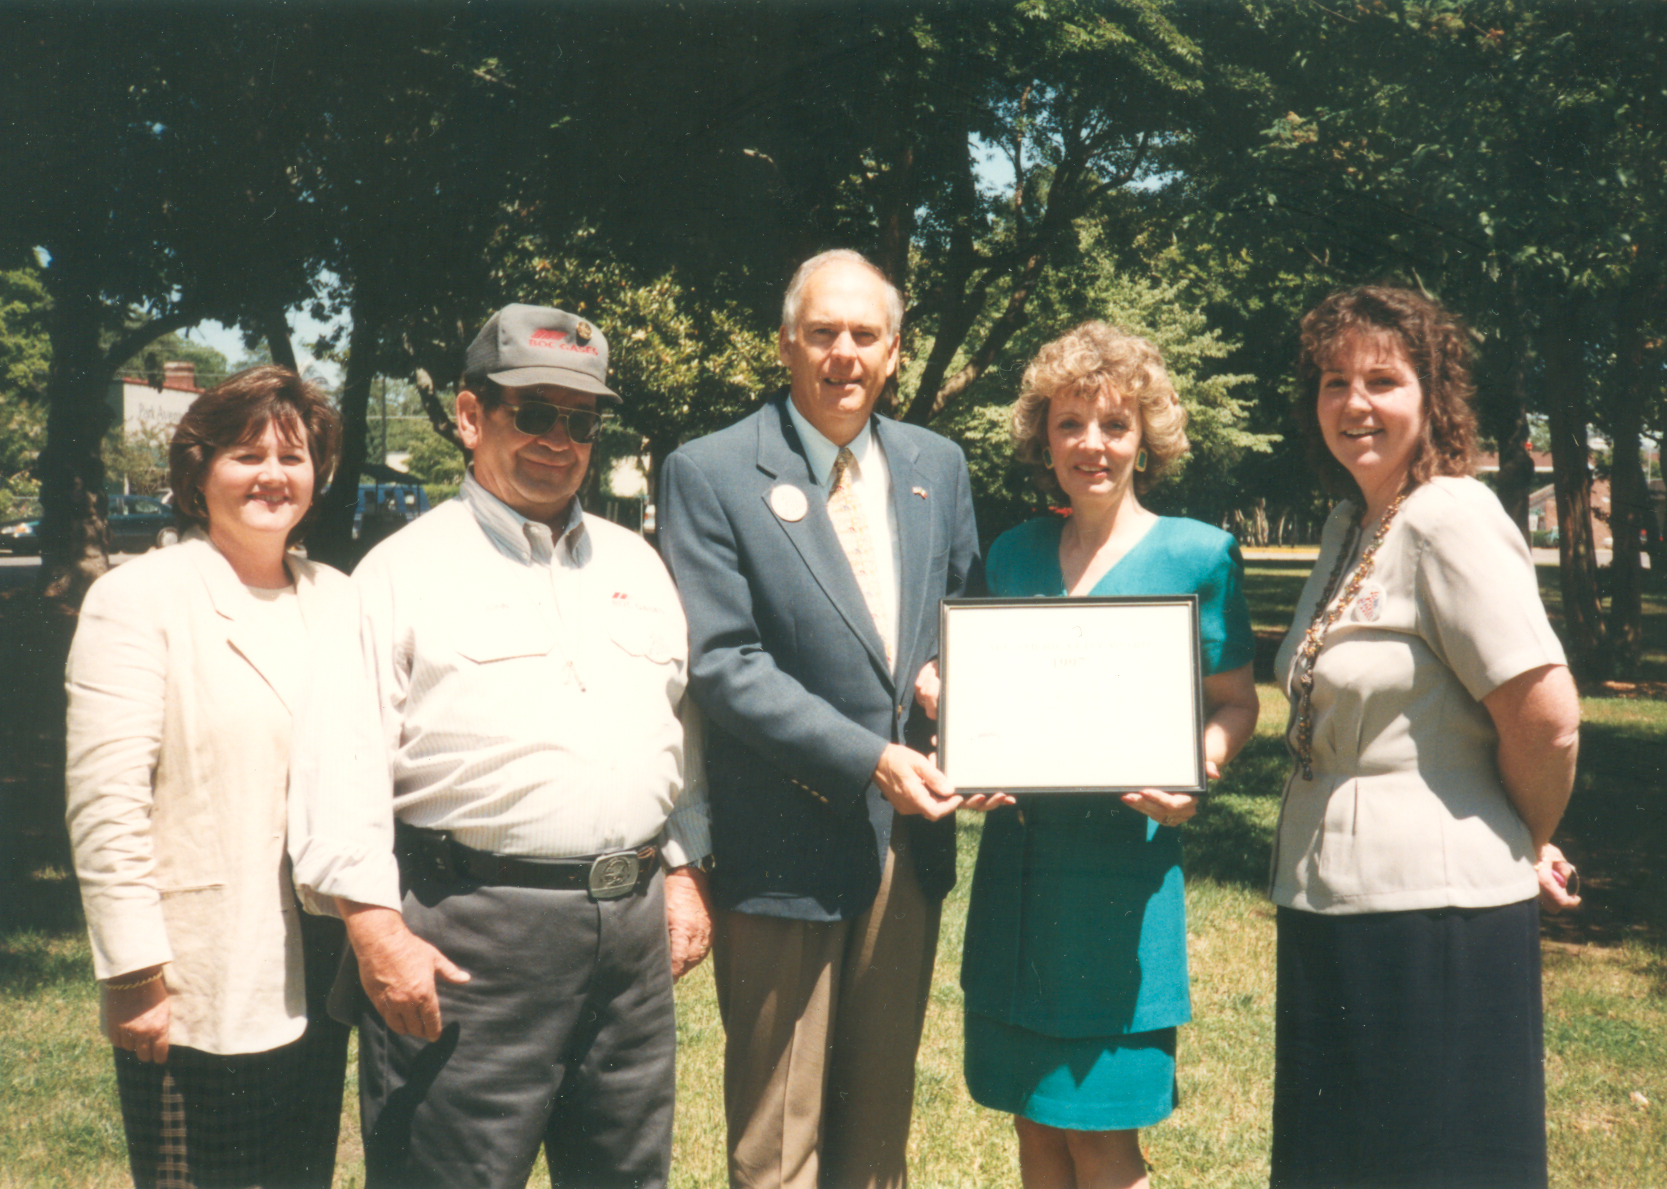 Photo of Fred Cavanaugh, Karen Papouchado, Lisa Segura and others